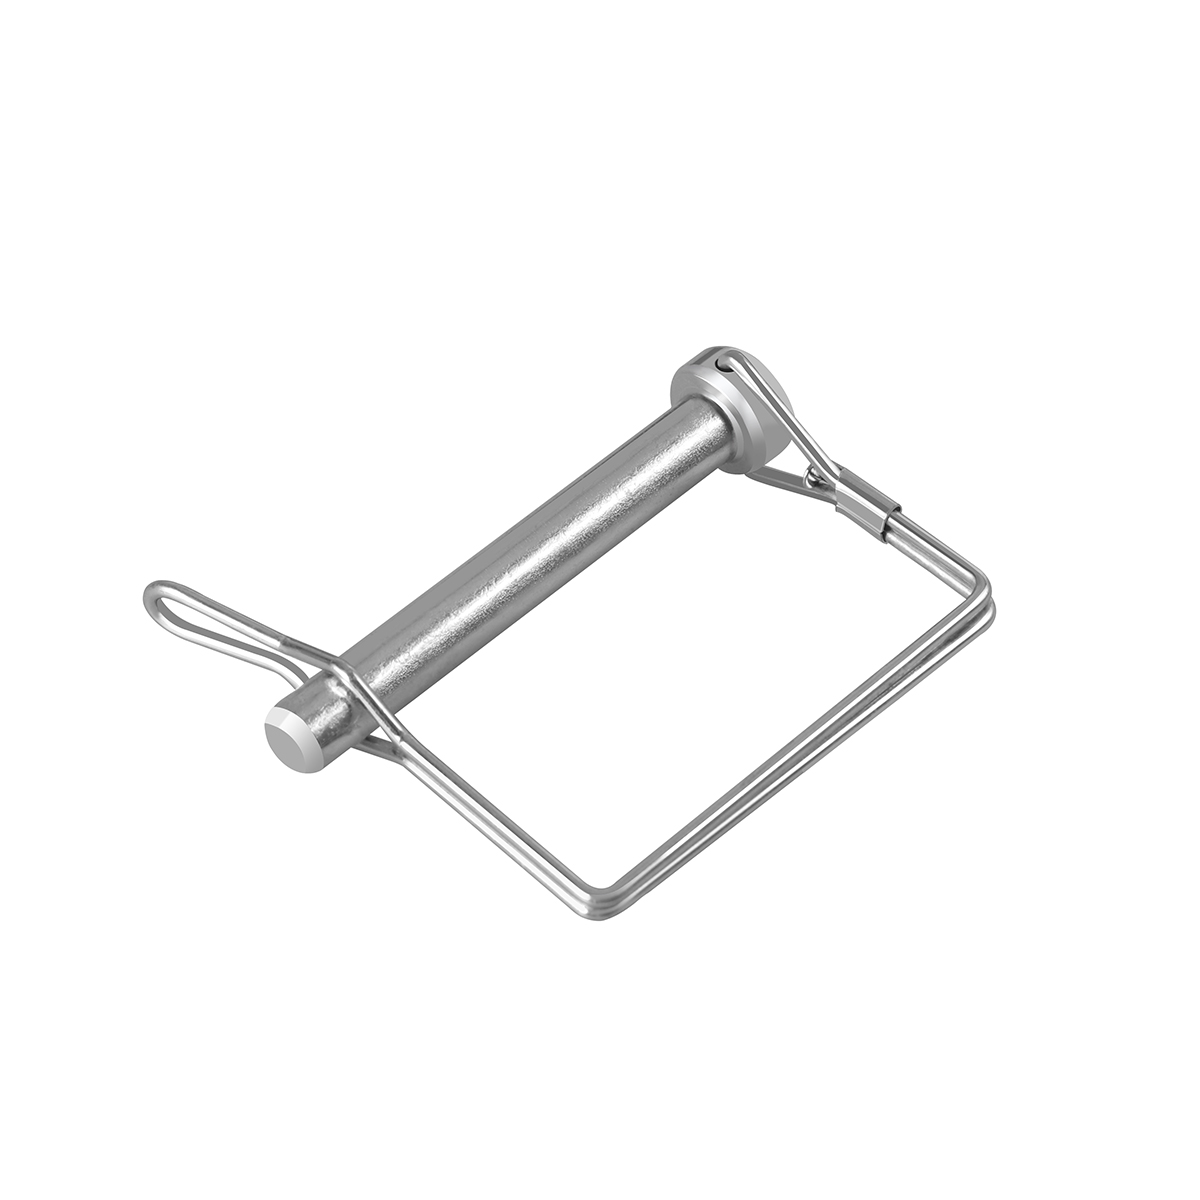 Auto Car Trailer Safety Pin Safety Pin For Trailer Automobiles Caravane Accessories Remorque Voiture Accessories A30